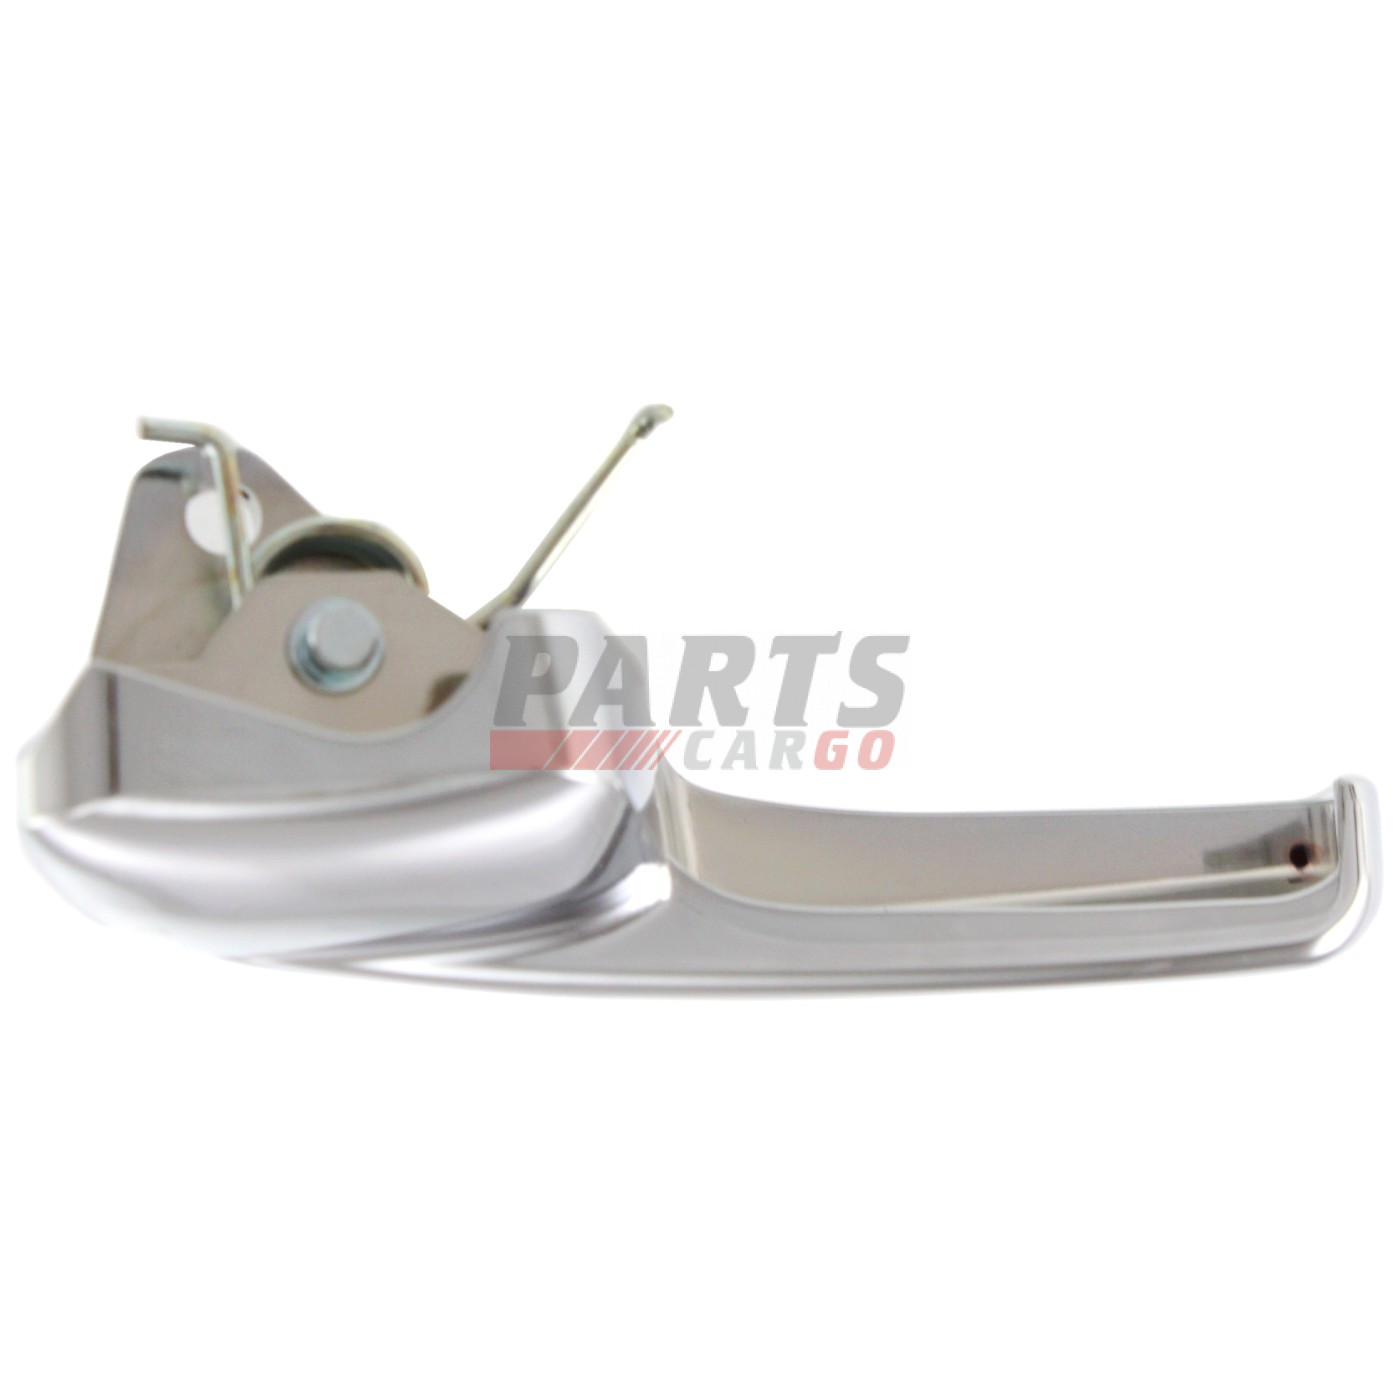 New Front Or Rear Passenger Side Door Handle For Ford Expedition 2003-2006